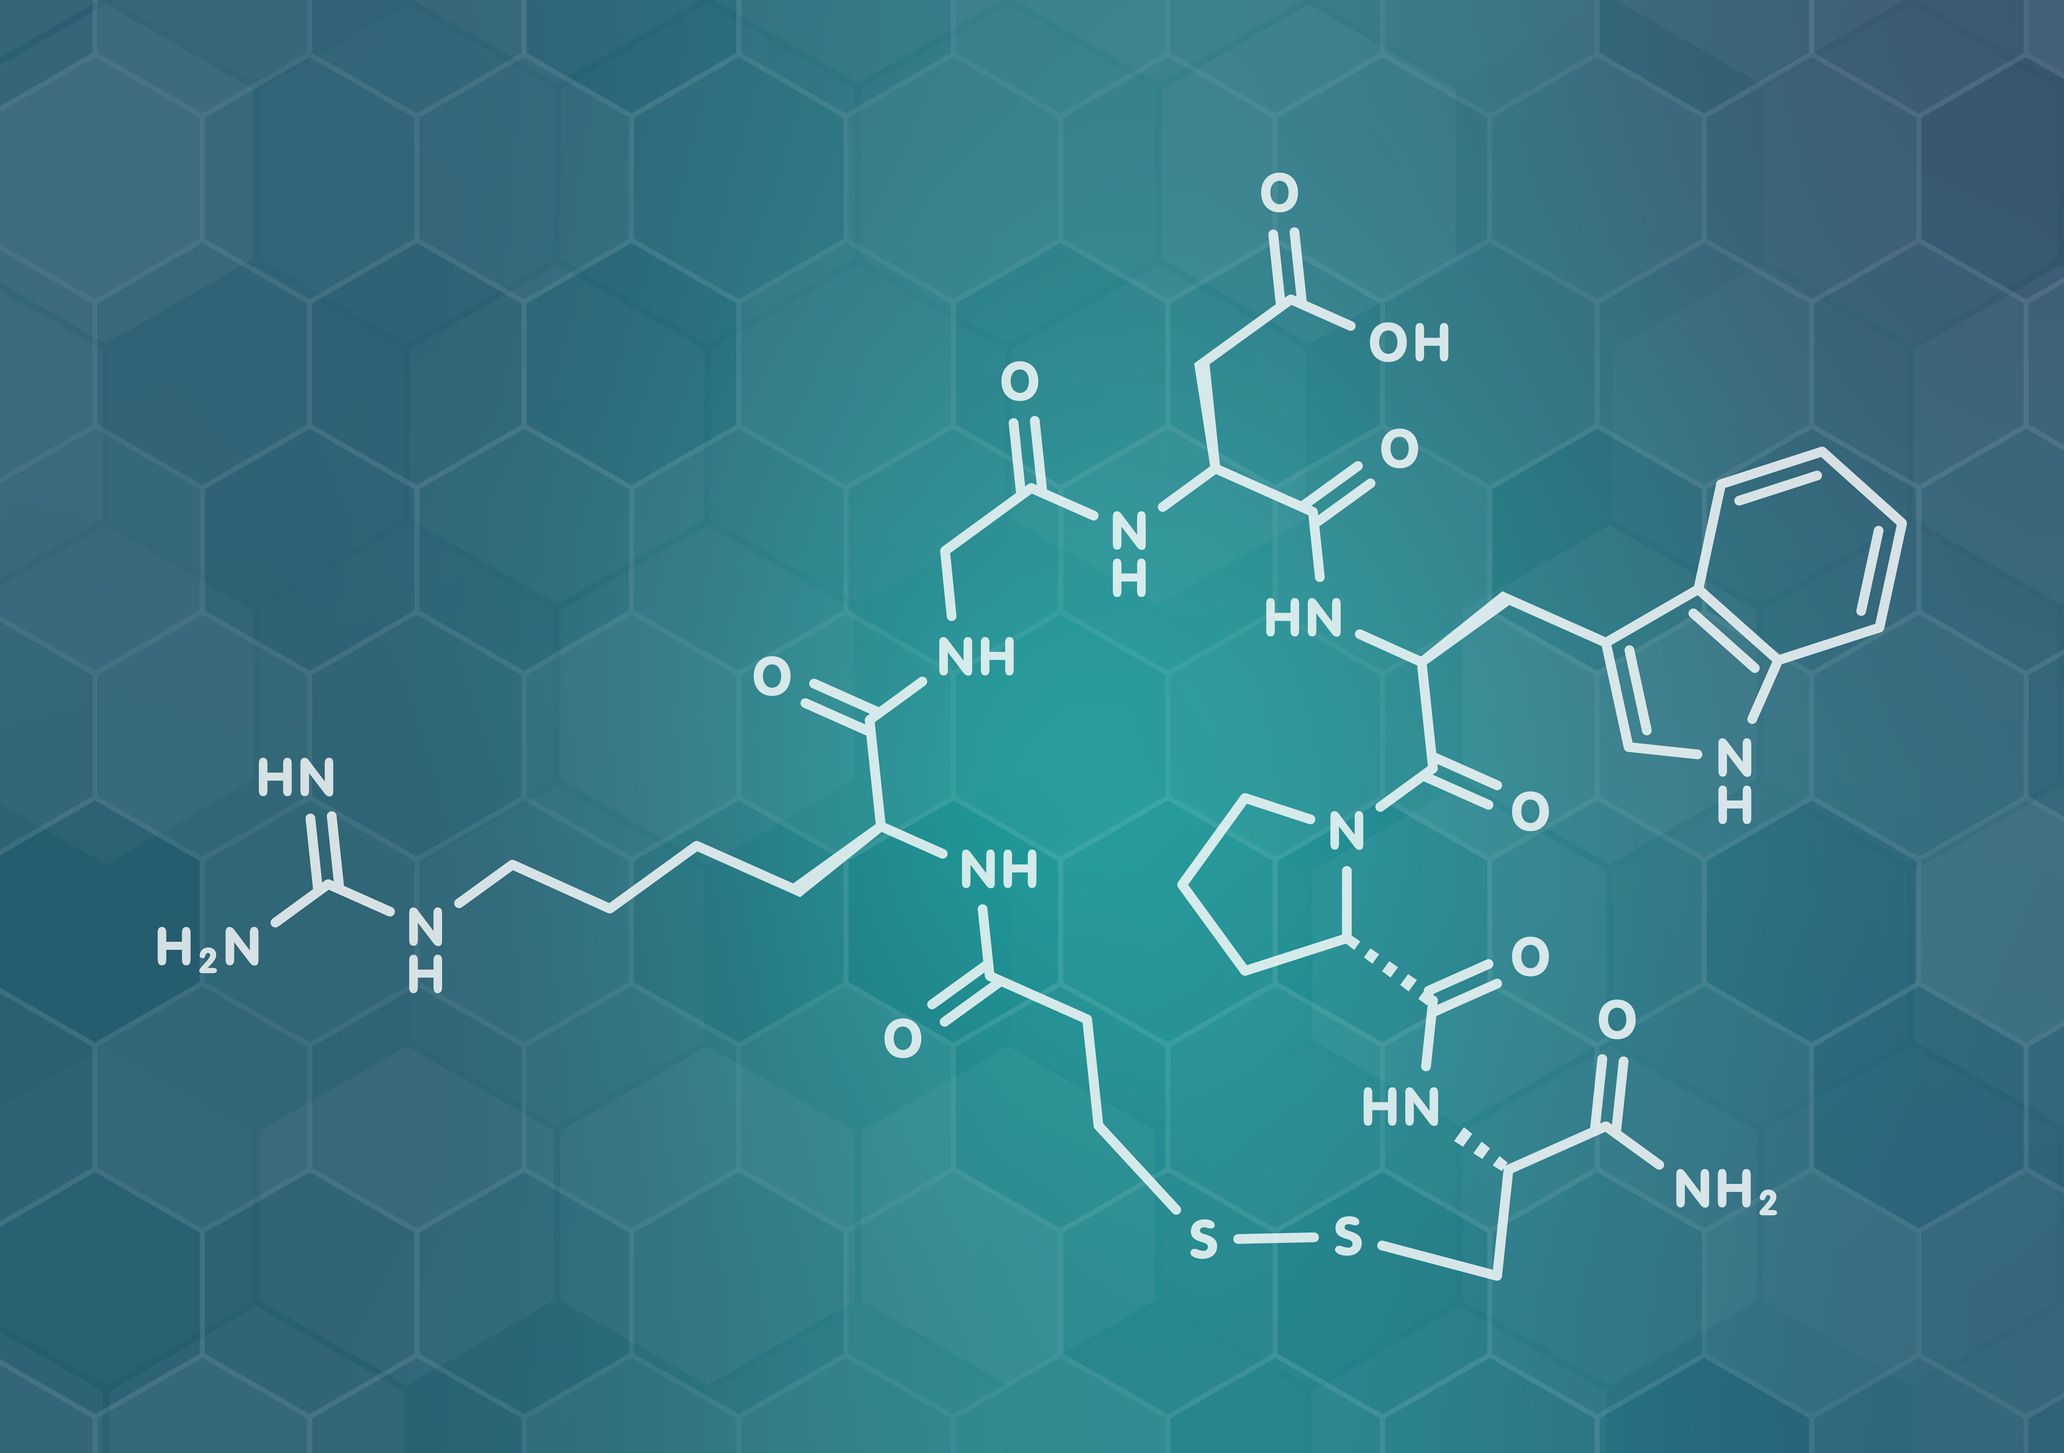 Peptides and Their Functions